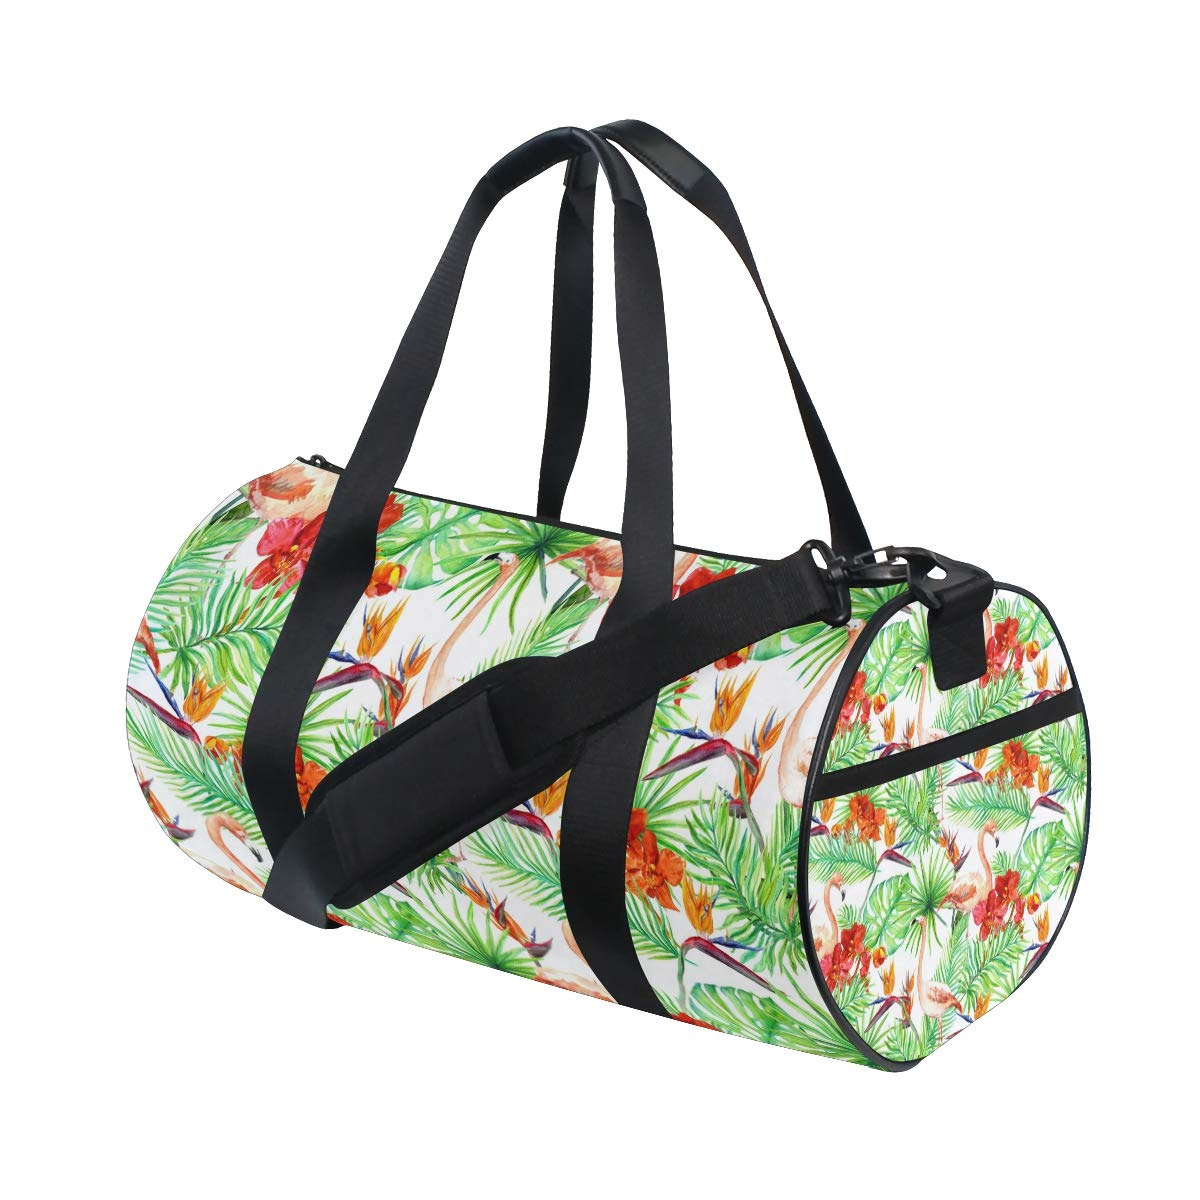 Flamingo Yoga Sports Gym Duffle Bags Tote Sling Travel Bag Patterned Canvas with Pocket and Zipper For Men Women Bag